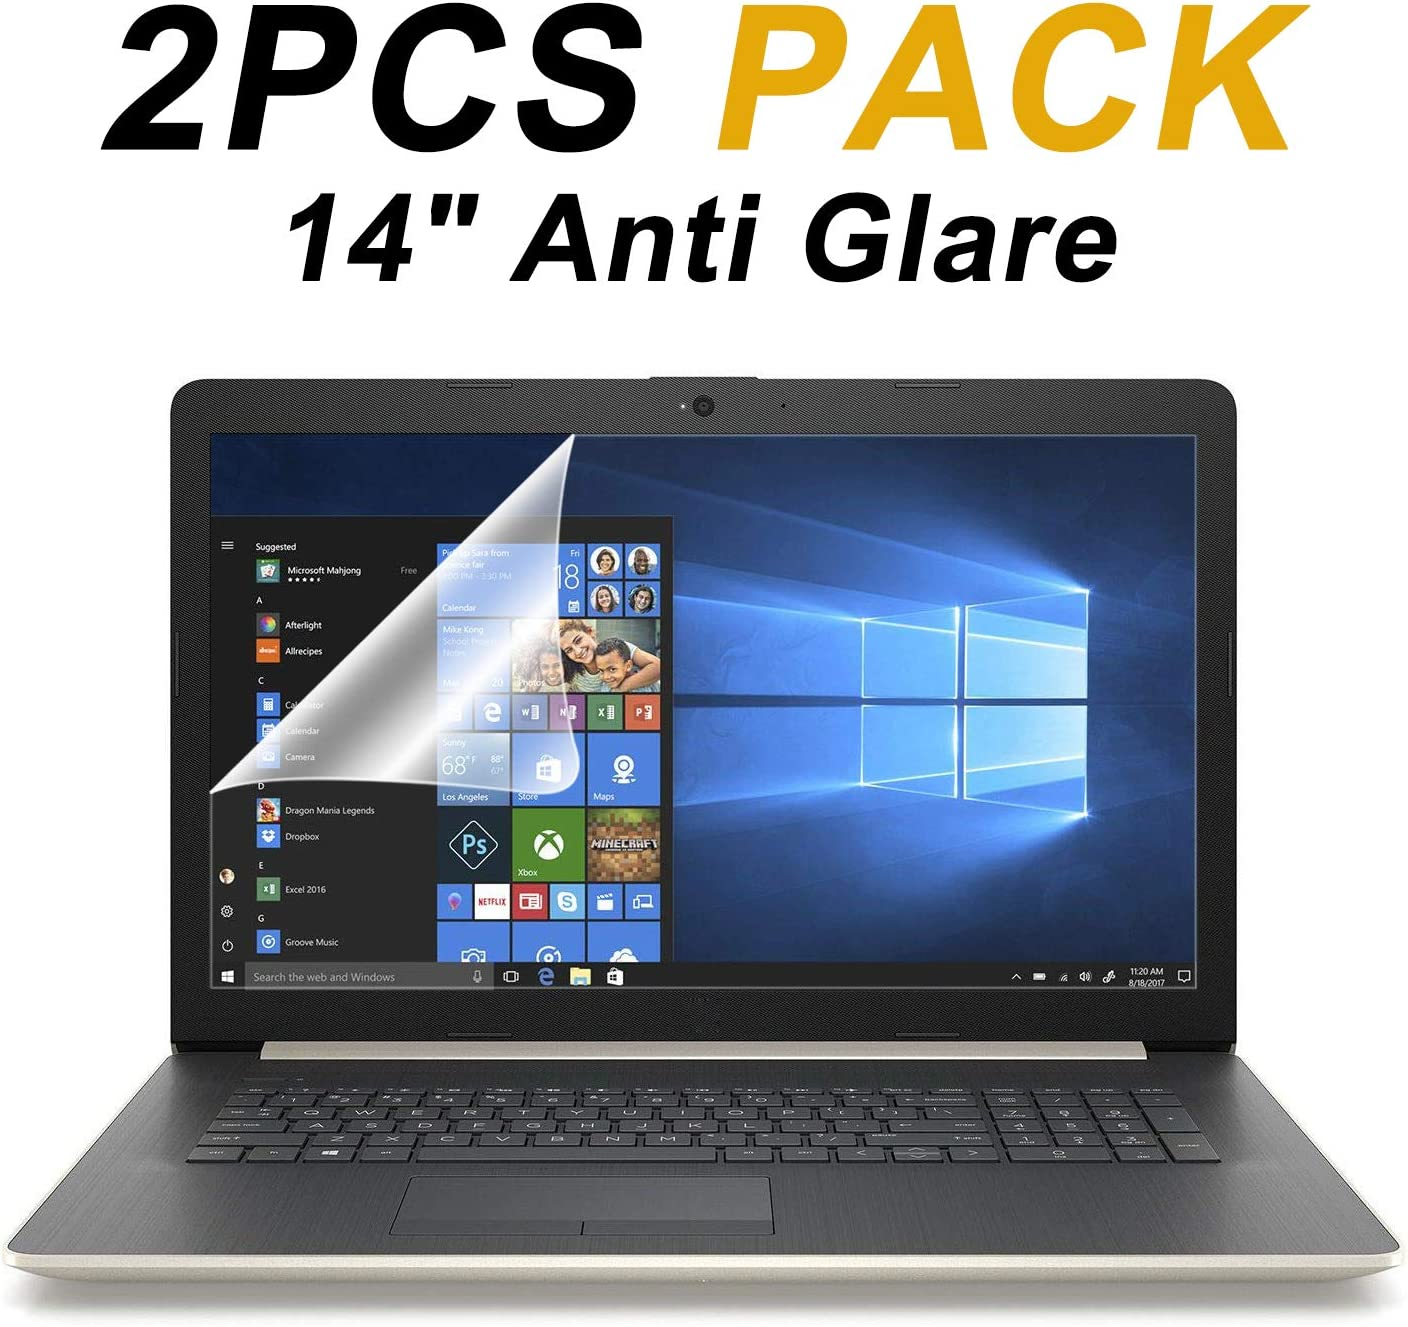 2-Pack FORITO 14 Inch Laptop Anti Glare(Matte) Screen Protector Cover for All 16:9 Aspect Ratio Laptop, Scratch Proof, Dust-Proof and Fingerprint Resistant 71JyiA2%2BOZL